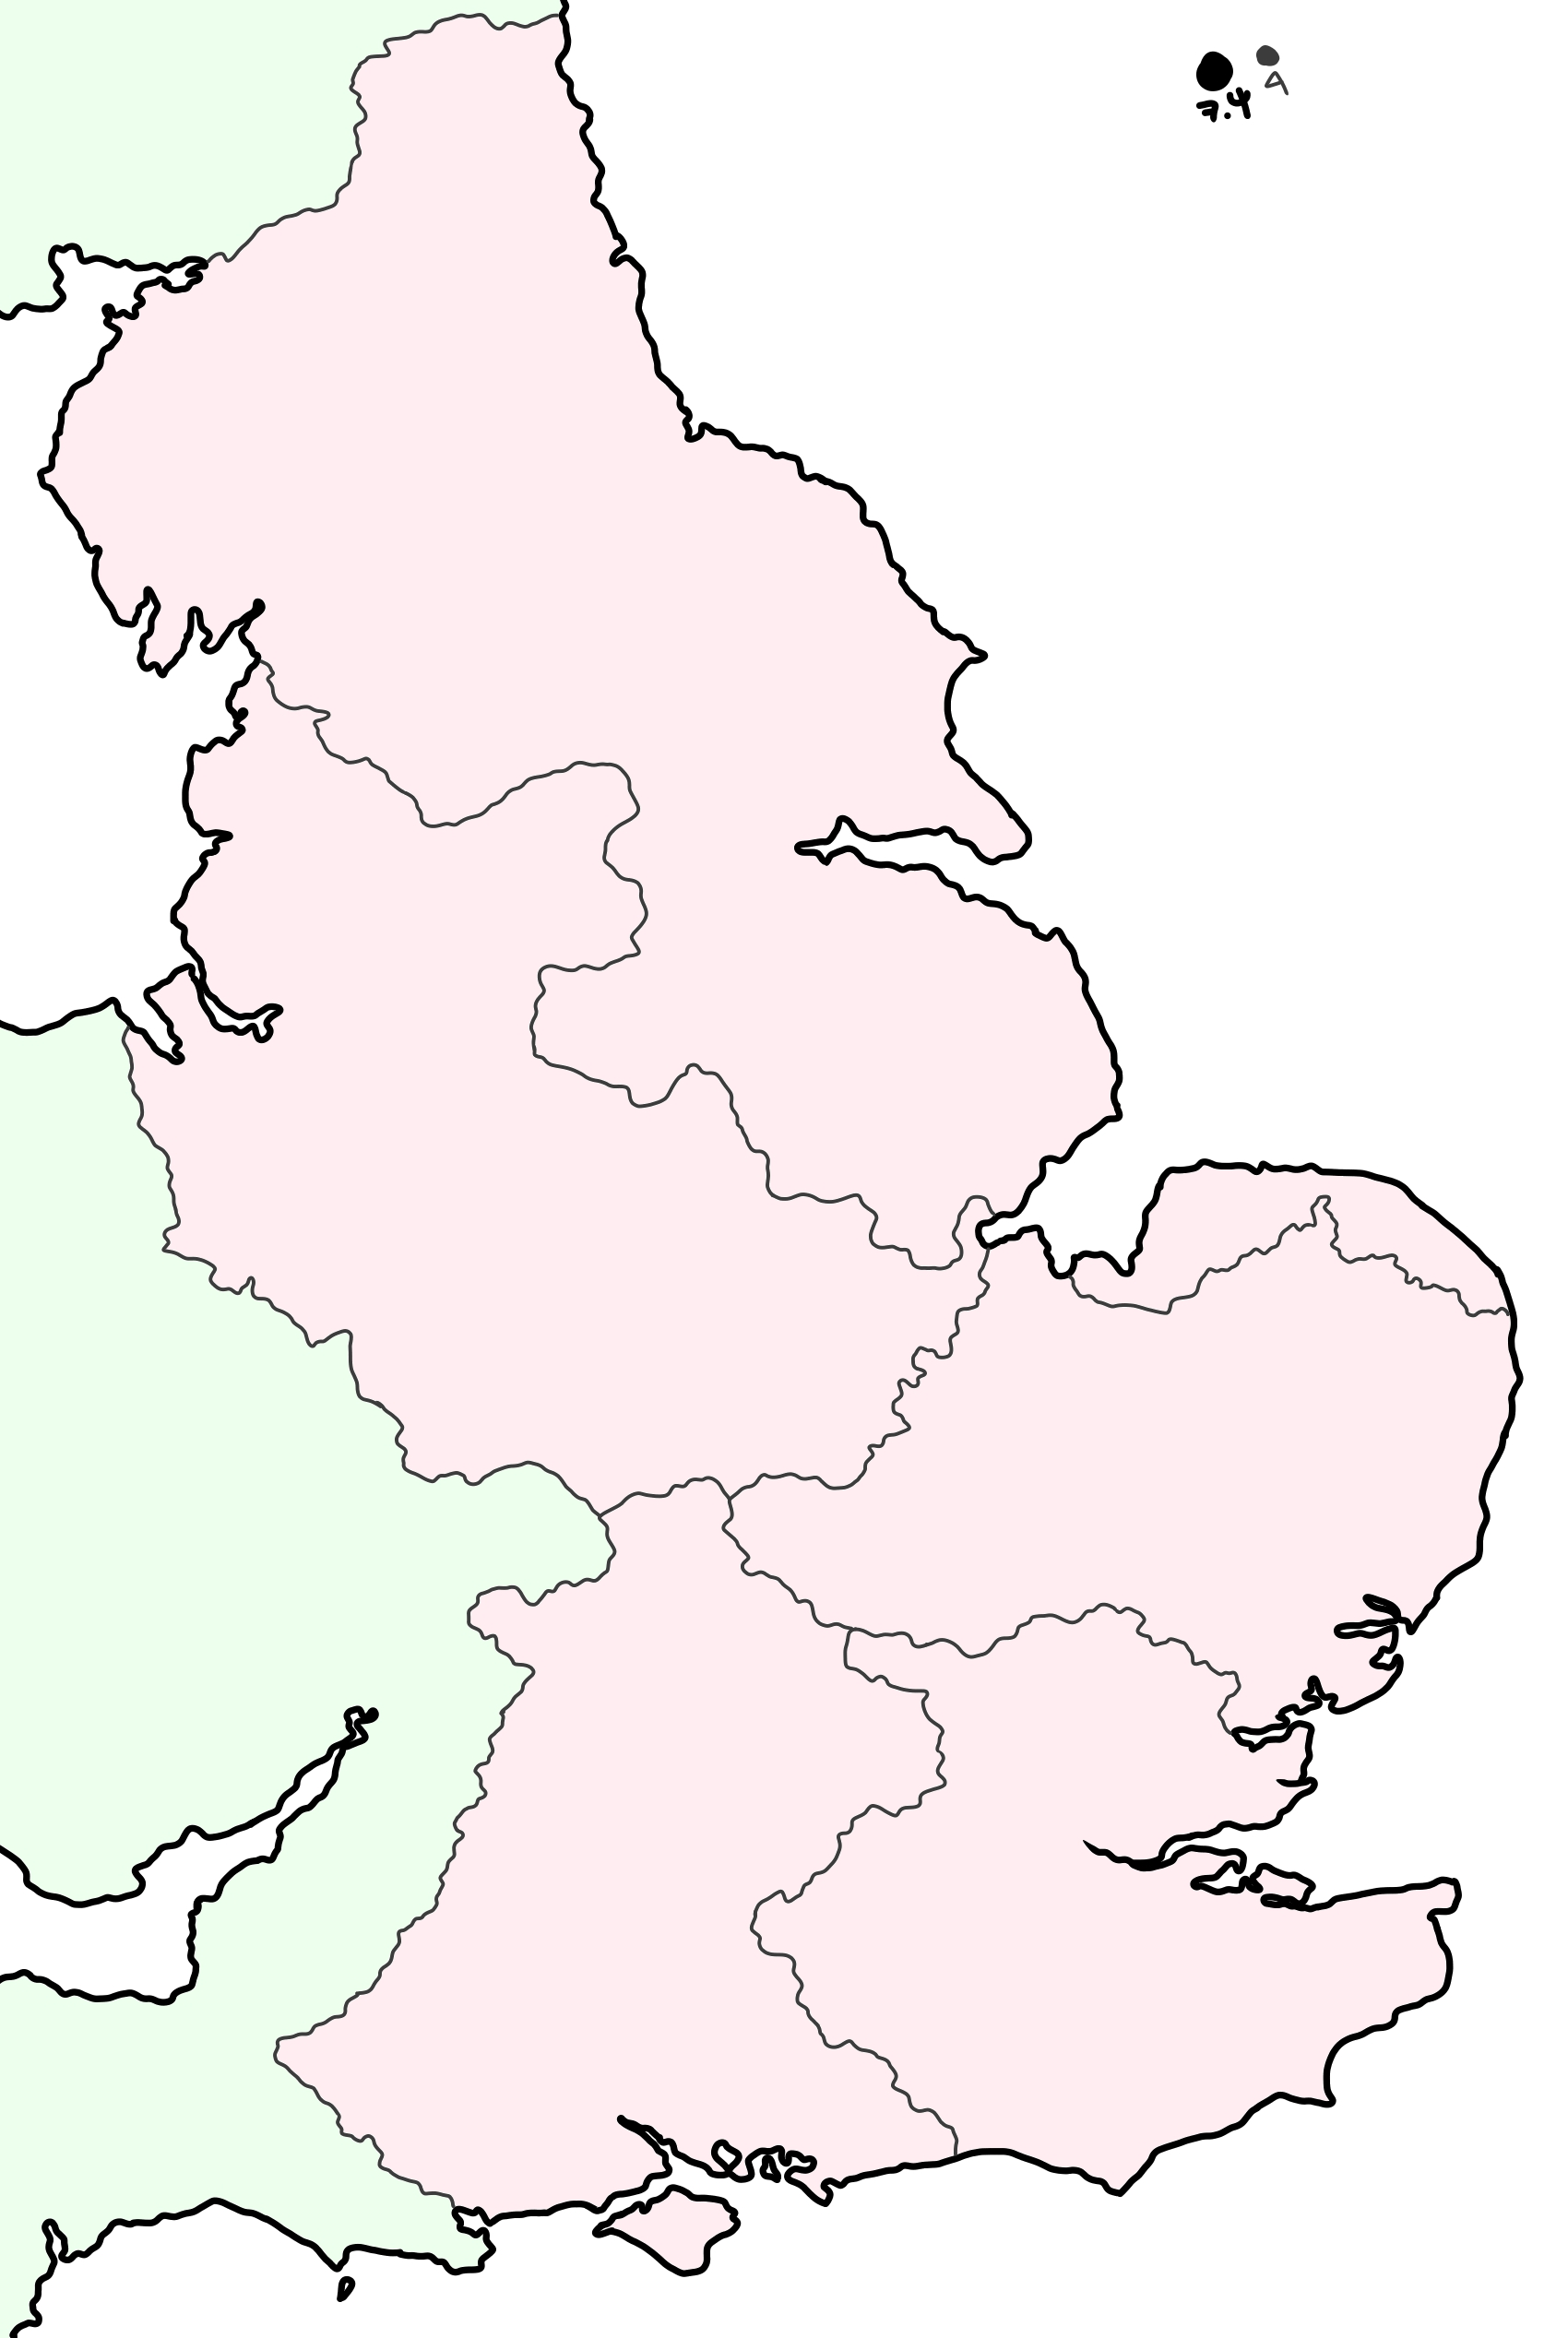 map-of-england-and-wales.jpg